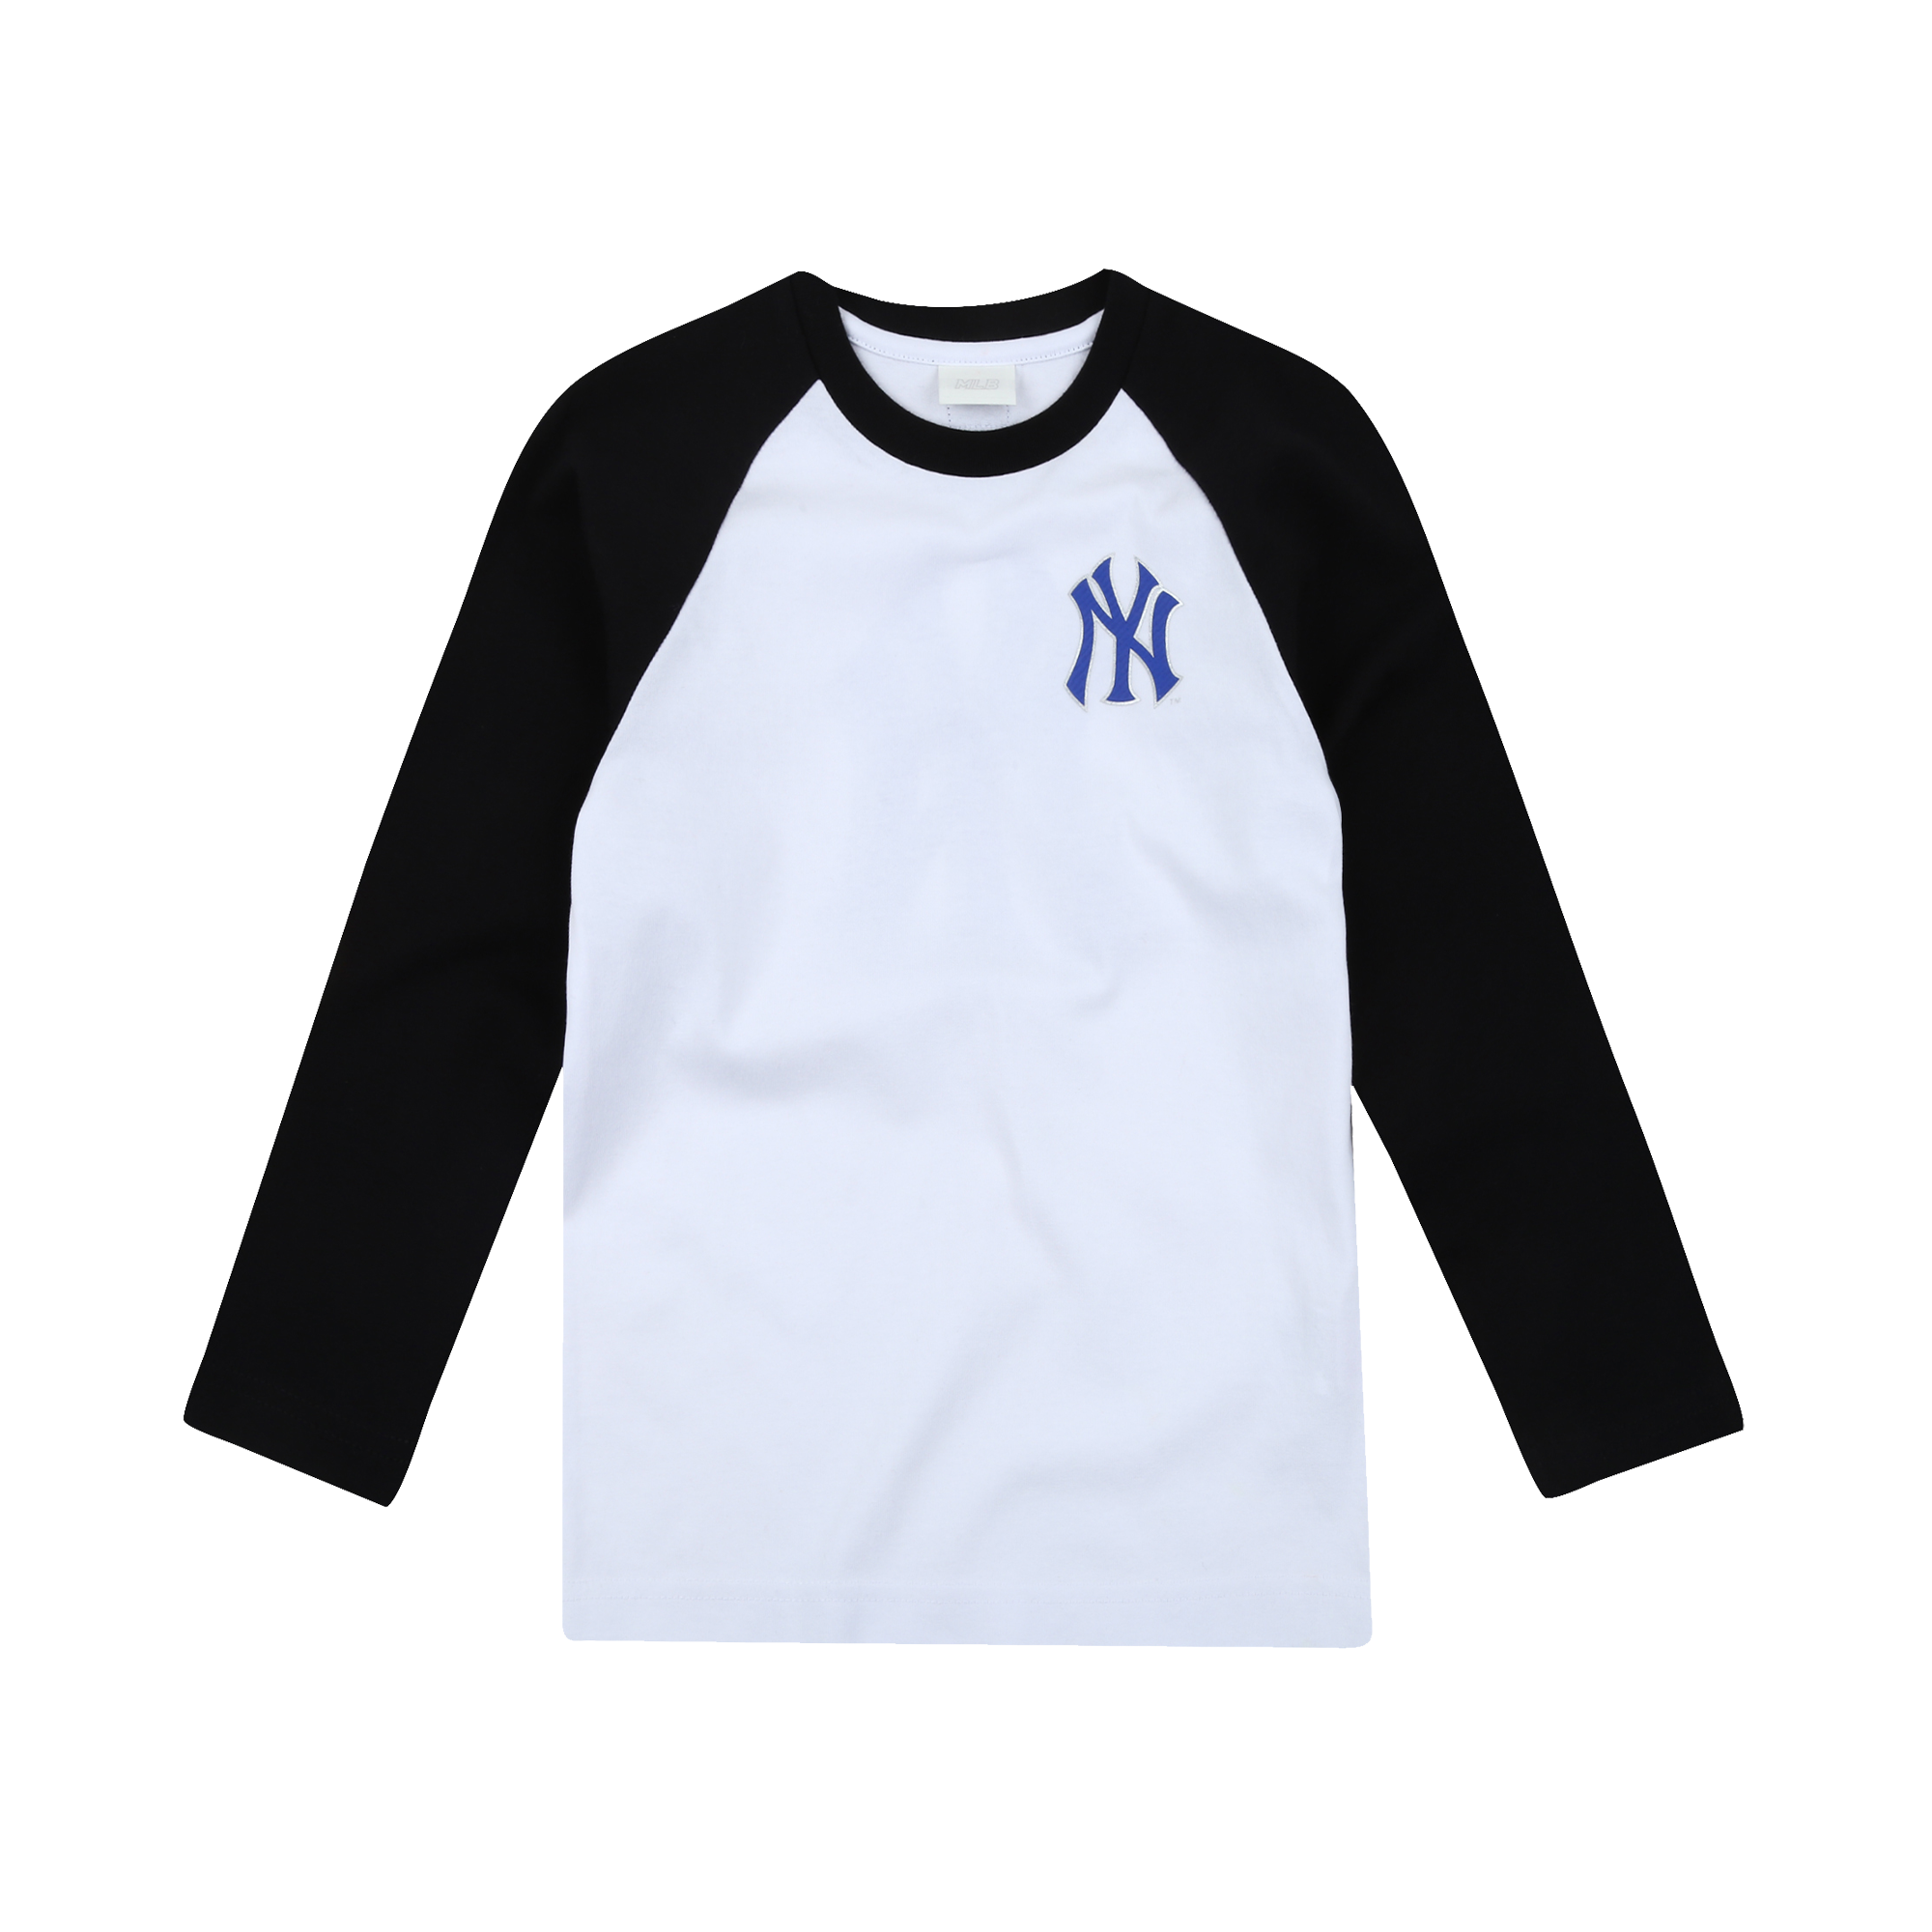 NEW YORK YANKEES UNISEX RAGLAN T-SHIRT